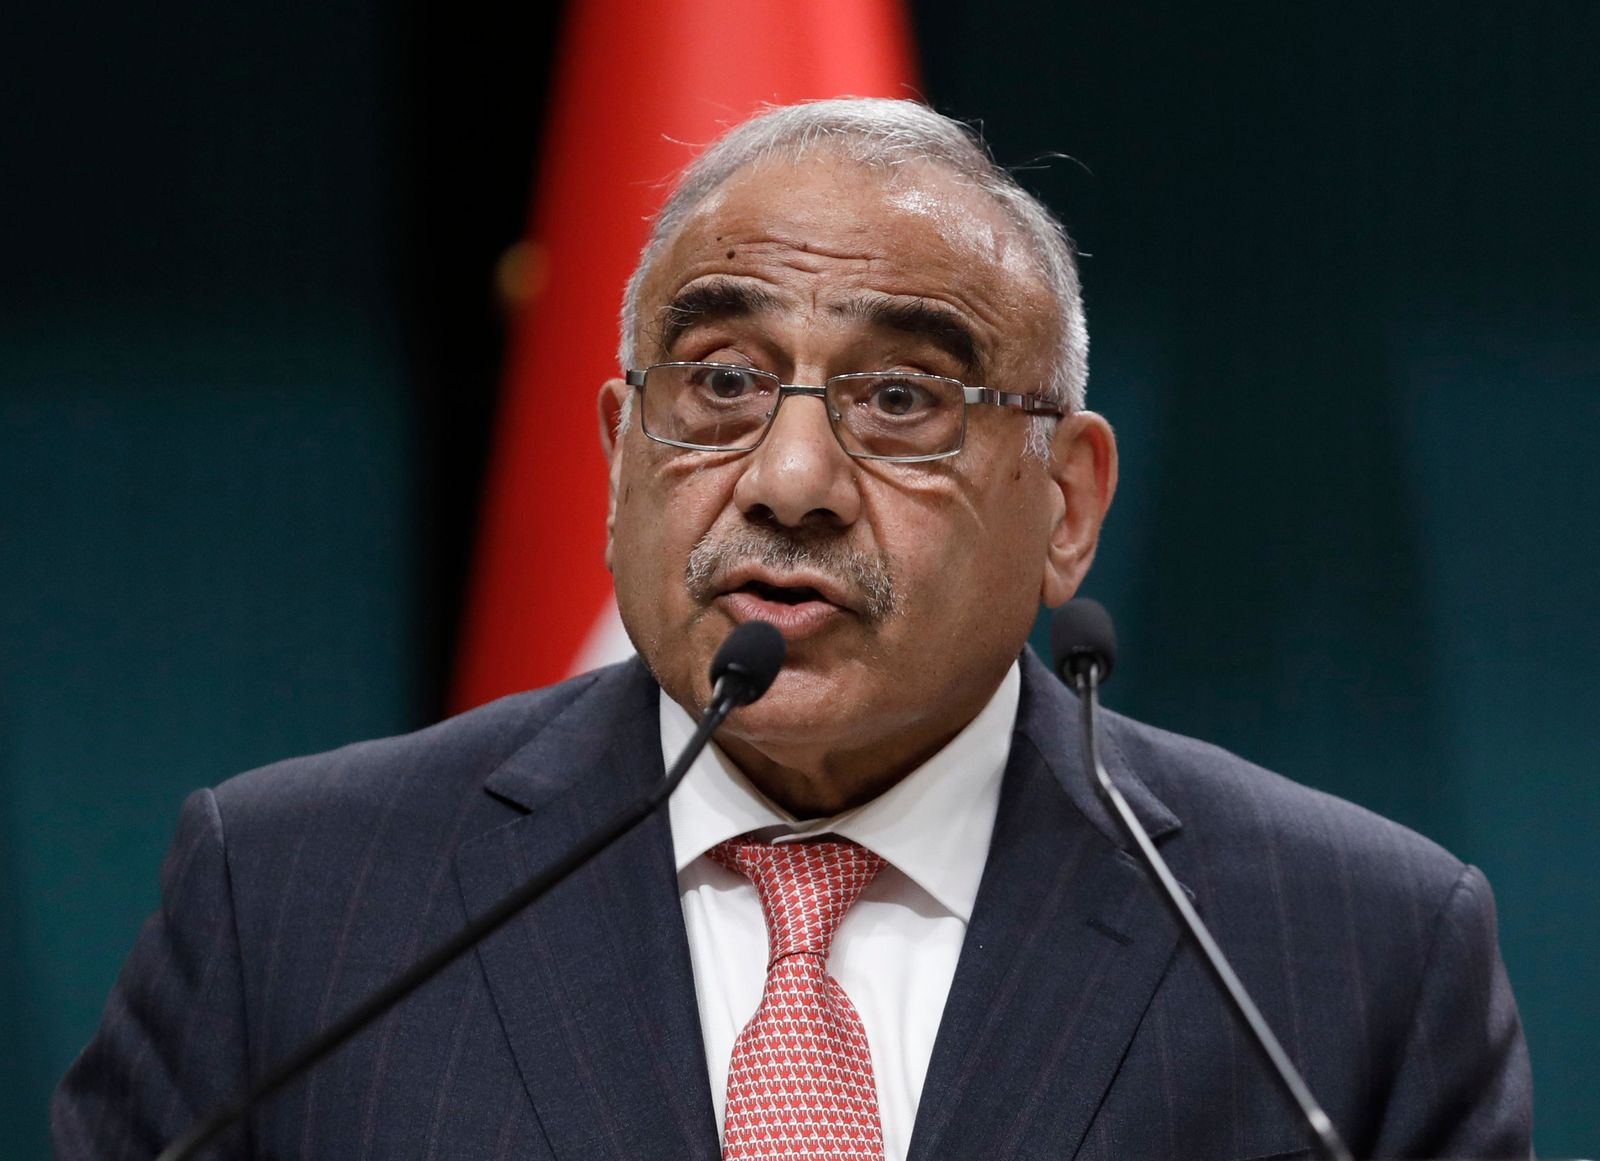 "FILE - In this May 15, 2019 file photo, Iraqi Prime Minister Adel Abdul-Mahdi speaks to the media during a joint news conference with Turkish President Recep Tayyip Erdogan, in Ankara, Turkey.  Adel Abdul-Mahdi said Friday, Nov. 29,  he would submit his resignation to parliament, a day after more than 40 people were killed by security forces and following calls by Iraq's top Shiite cleric for lawmakers to withdraw support. In a statement, Abdul-Mahdi said he ""listened with great concern"" to al-Sistani's sermon and made his decision in response to his call and in order to ""facilitate and hasten its fulfillment as soon as possible.""(AP Photo/Burhan Ozbilici, File)"